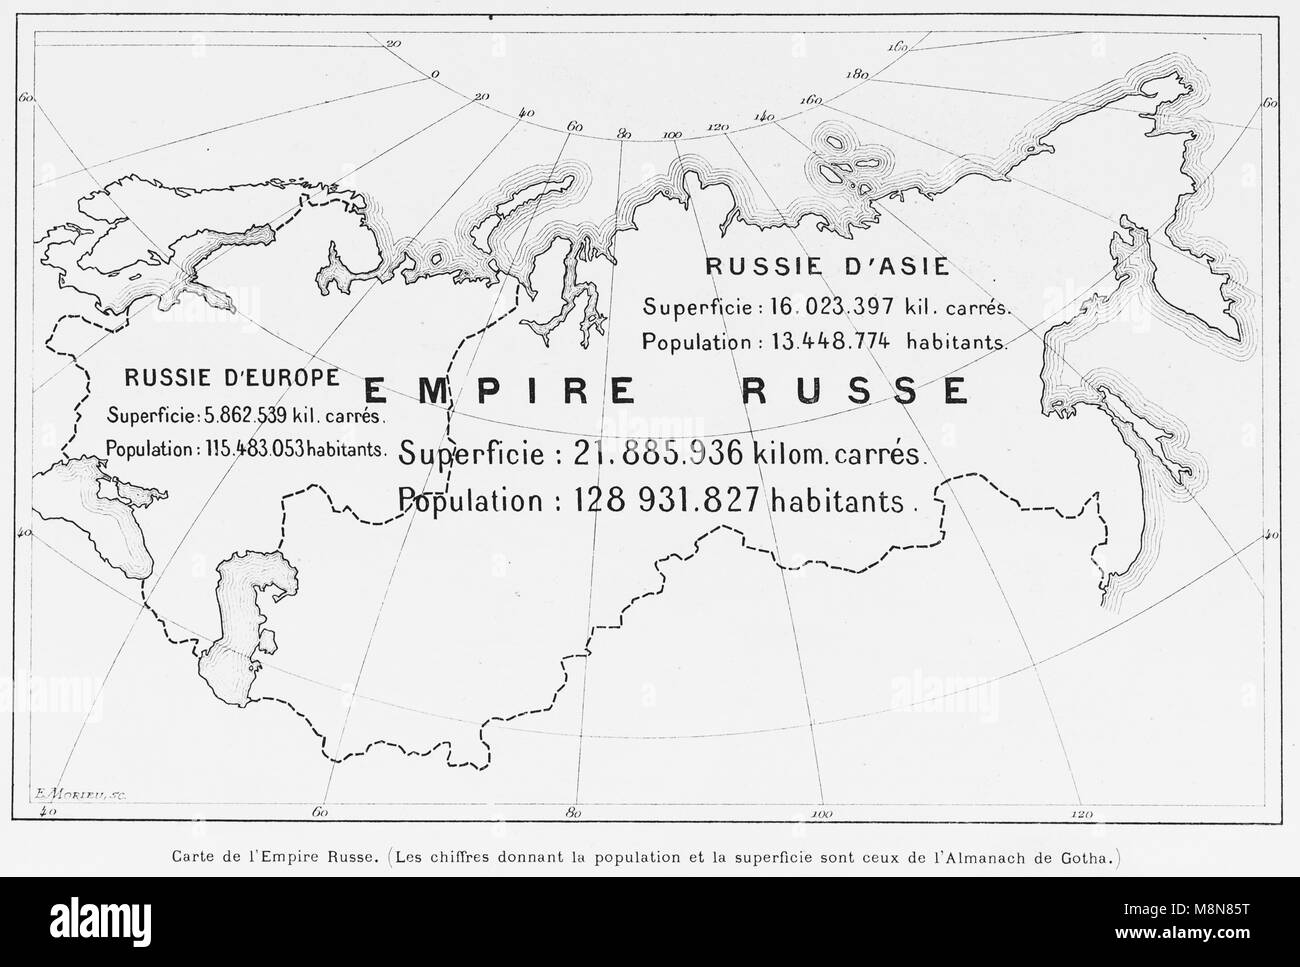 Map of the Russian Empire in 1900, Picture from the French weekly newspaper l'Illustration, 27th October 1900 - Stock Image